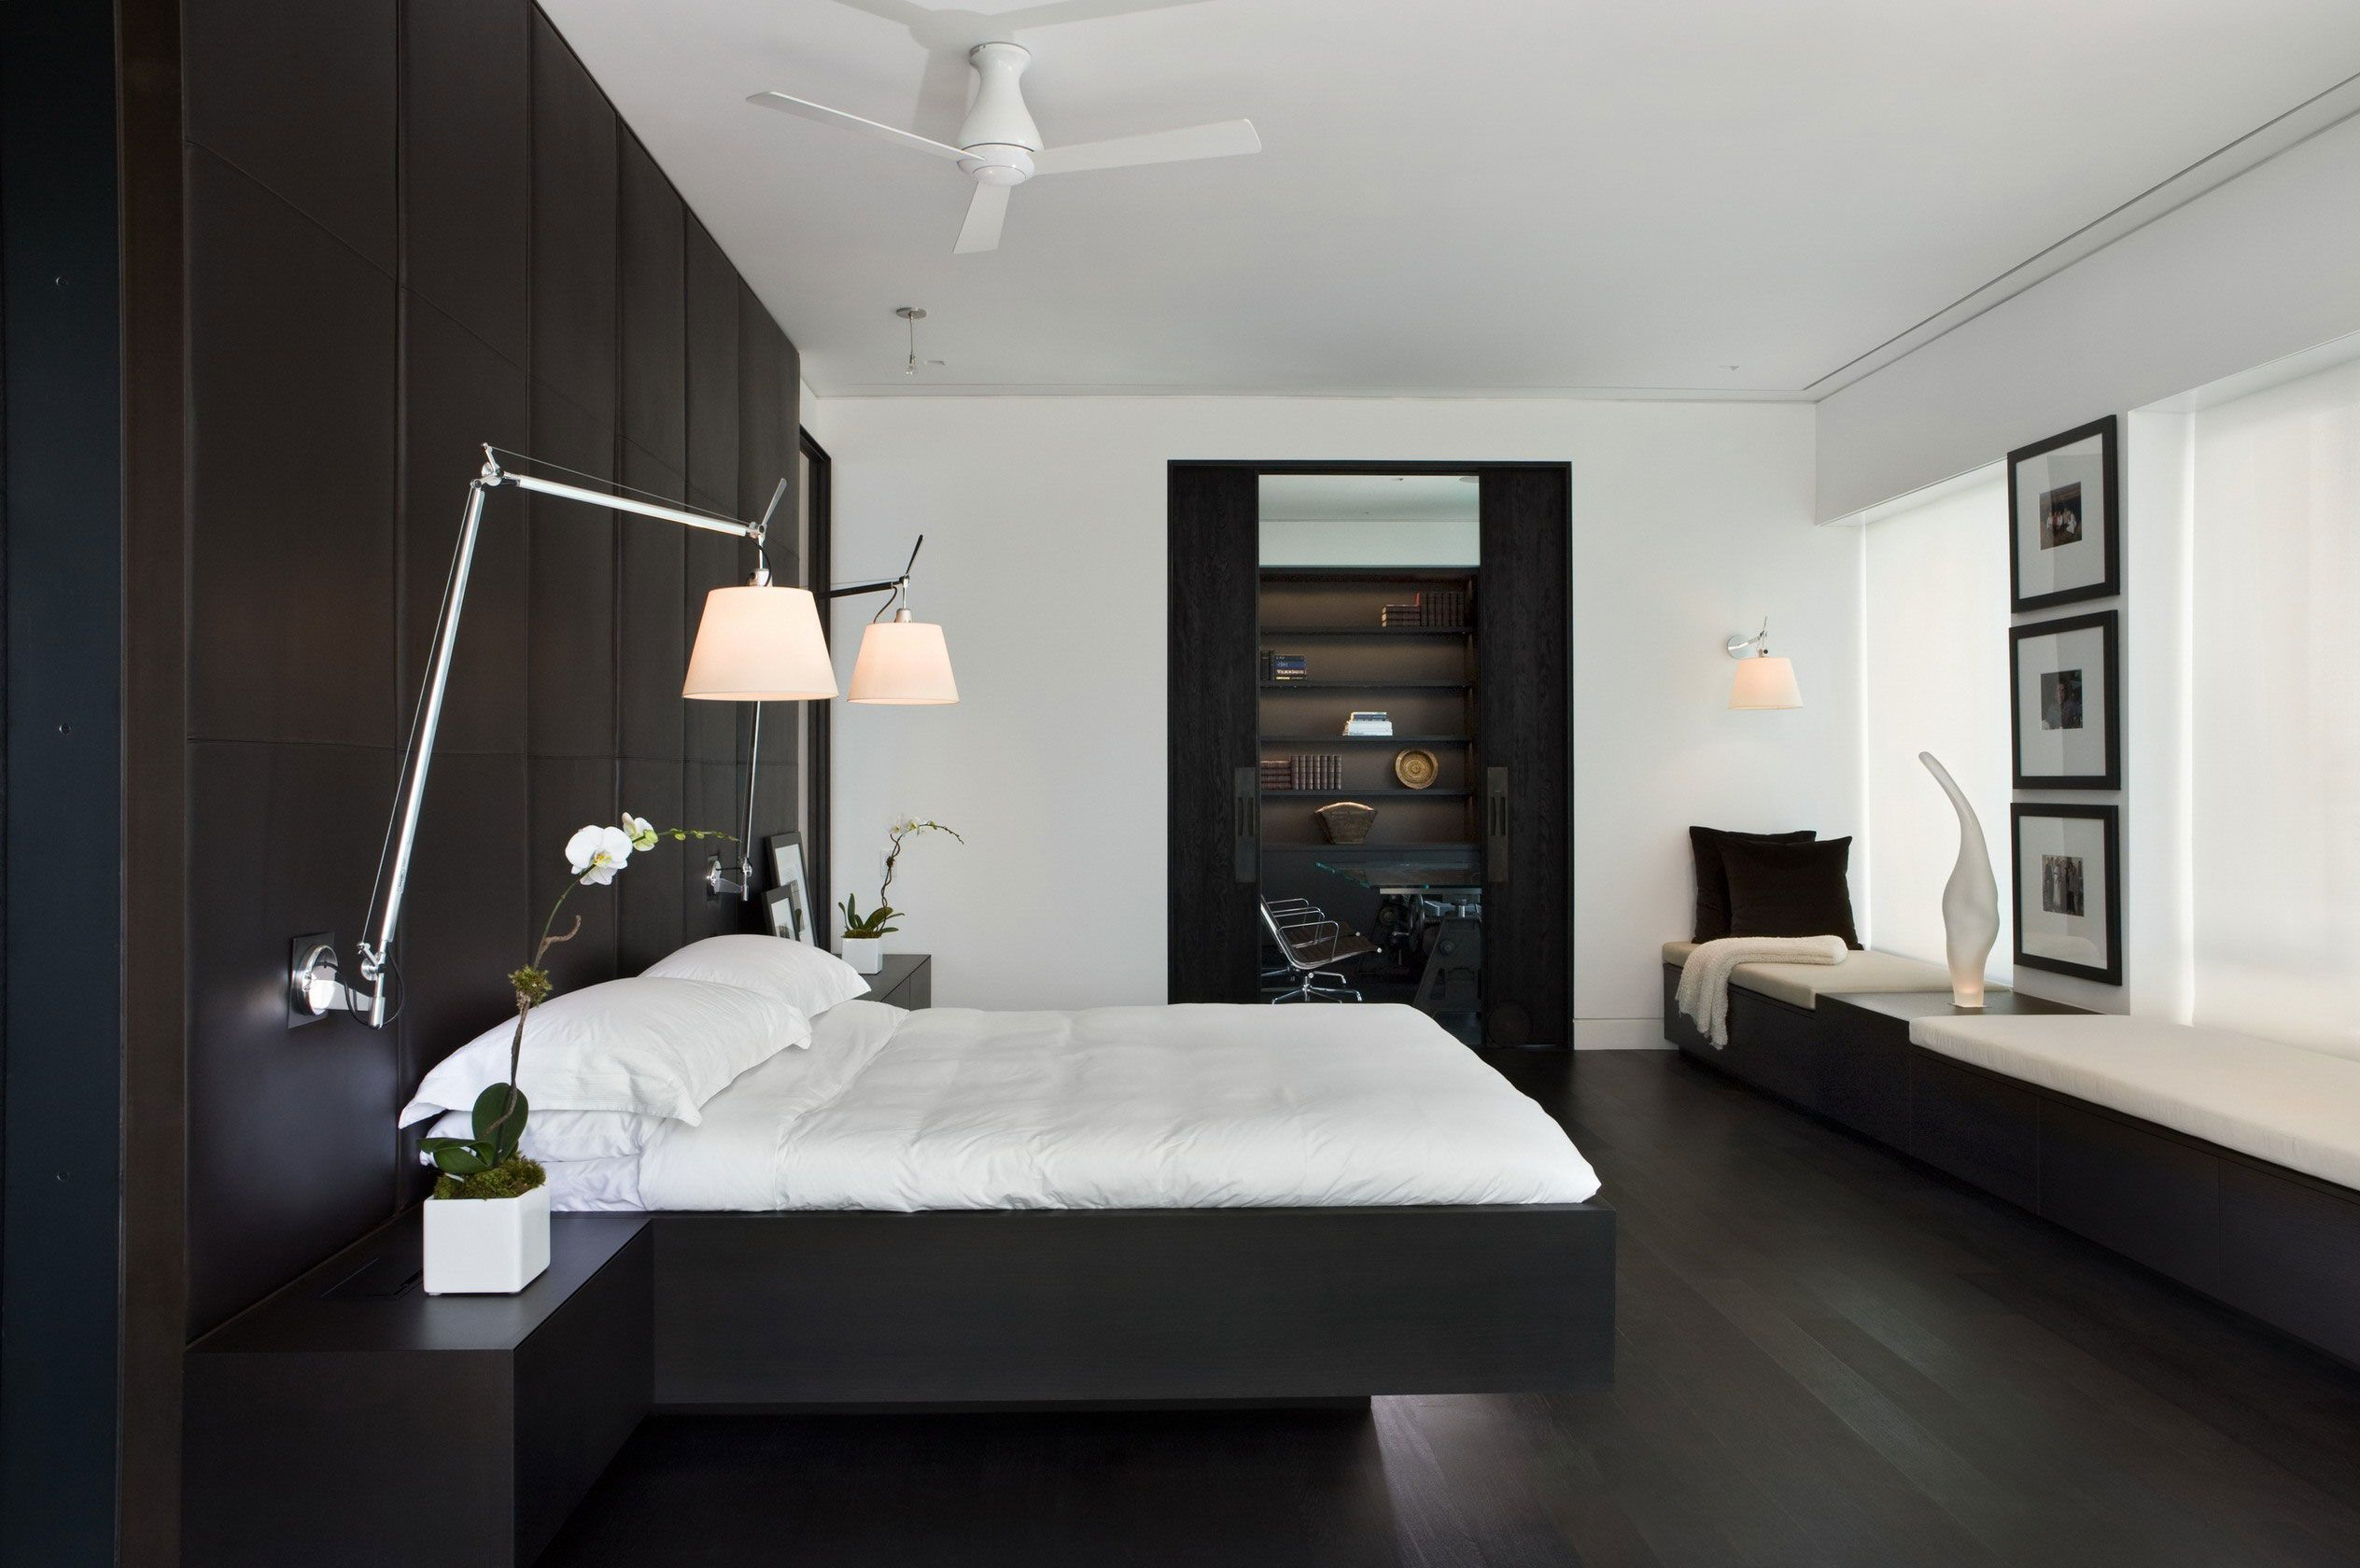 Hardwood Flooring Interior Seductive Dark Hardwood Floors Ideas With Ceiling Fan And Dark Bedroom Design Trends White Bedroom Design Minimalist Bedroom Design